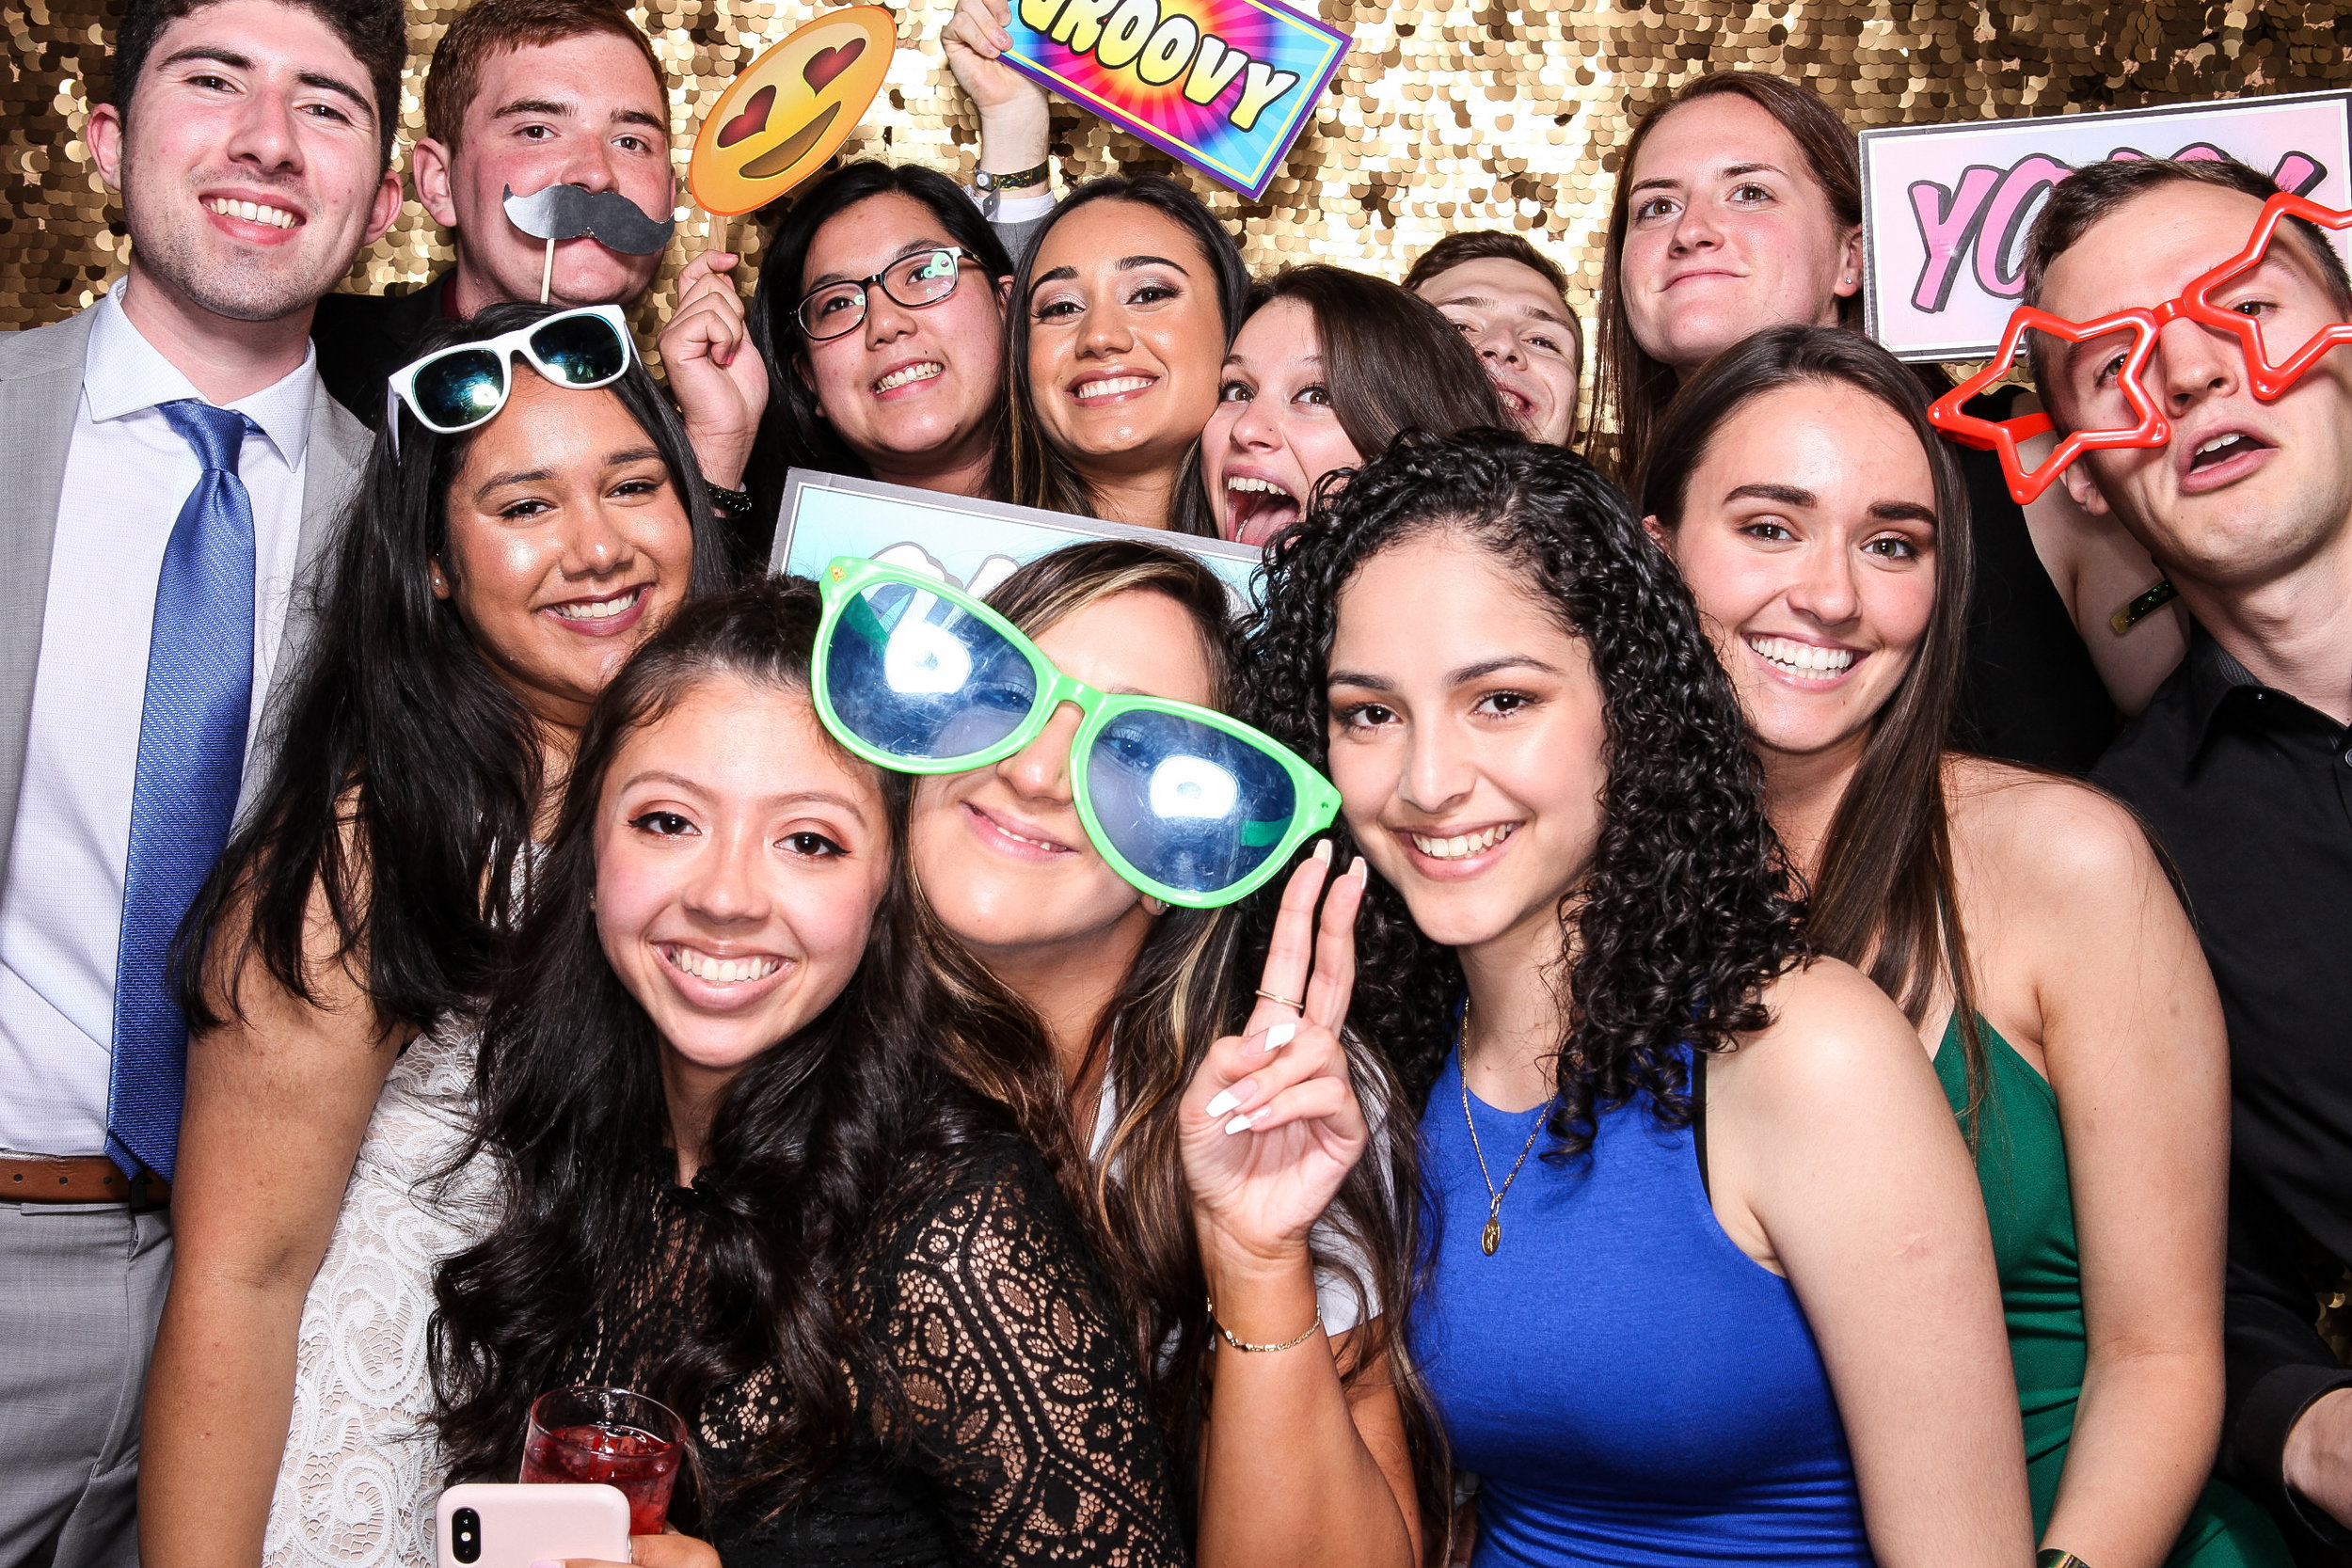 20190503_Adelphi_Senior_Formal-385.jpg